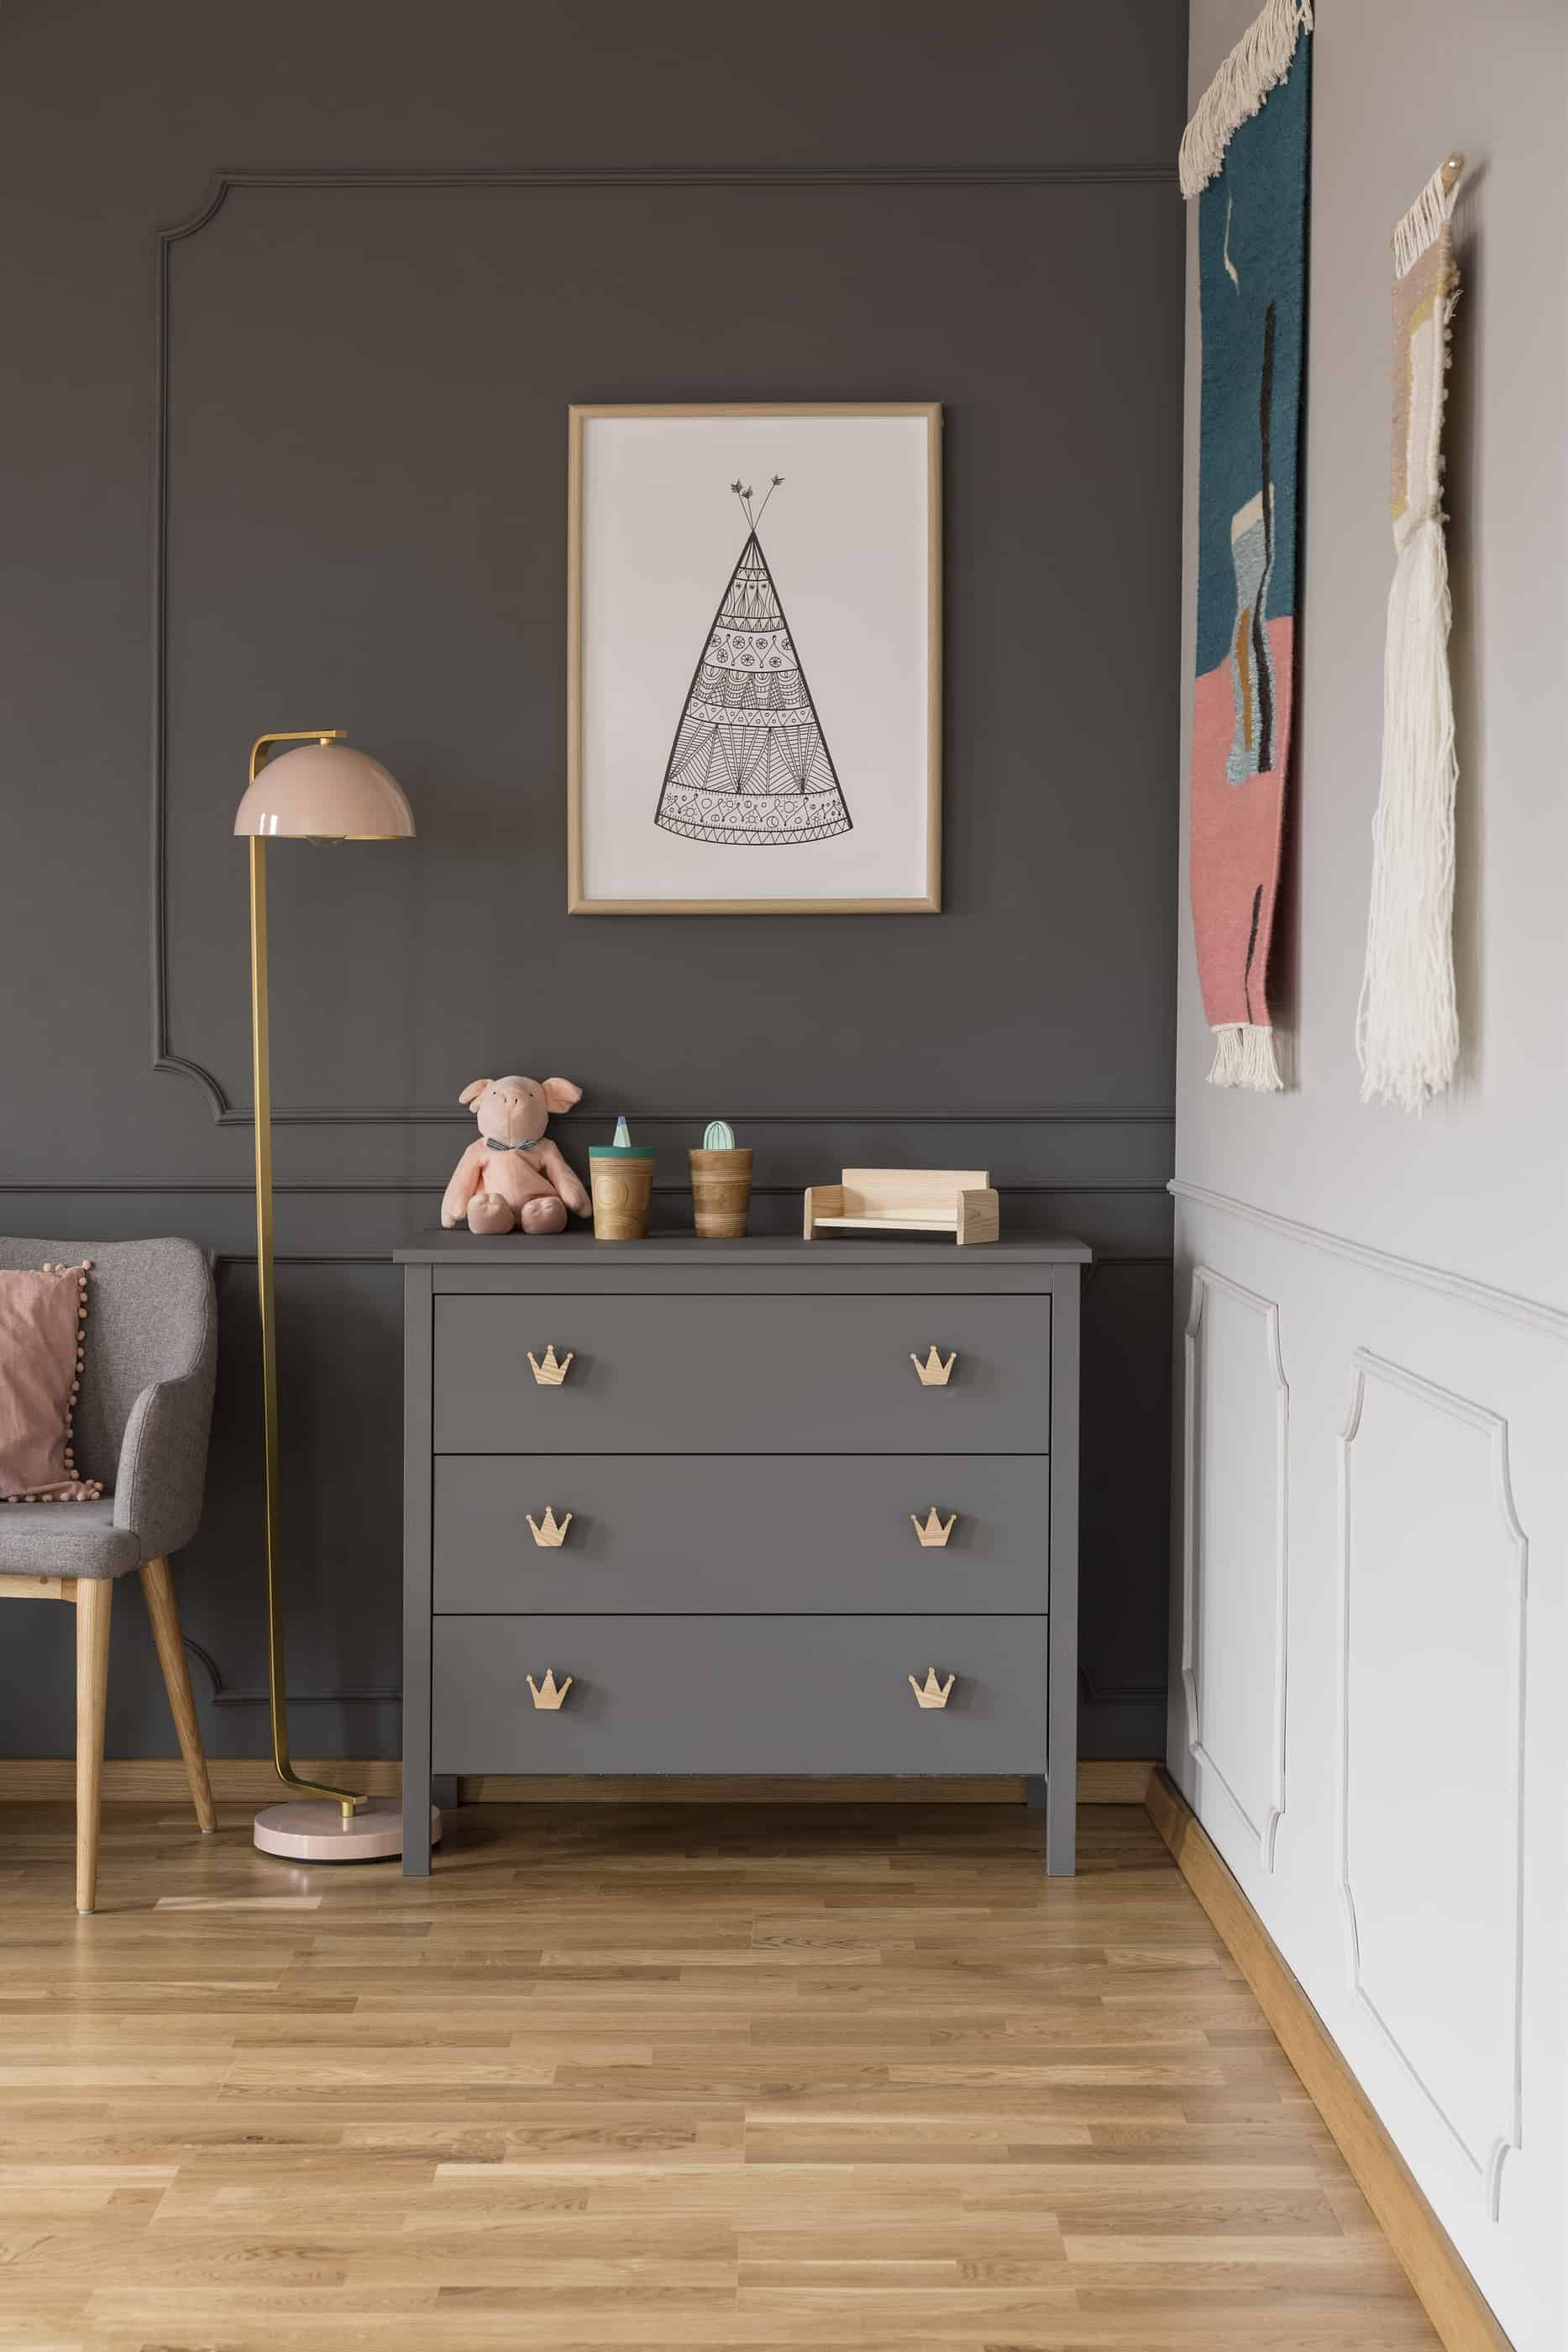 Baby girl's nursery details including a lamp and dresser alongside gray and white painted walls